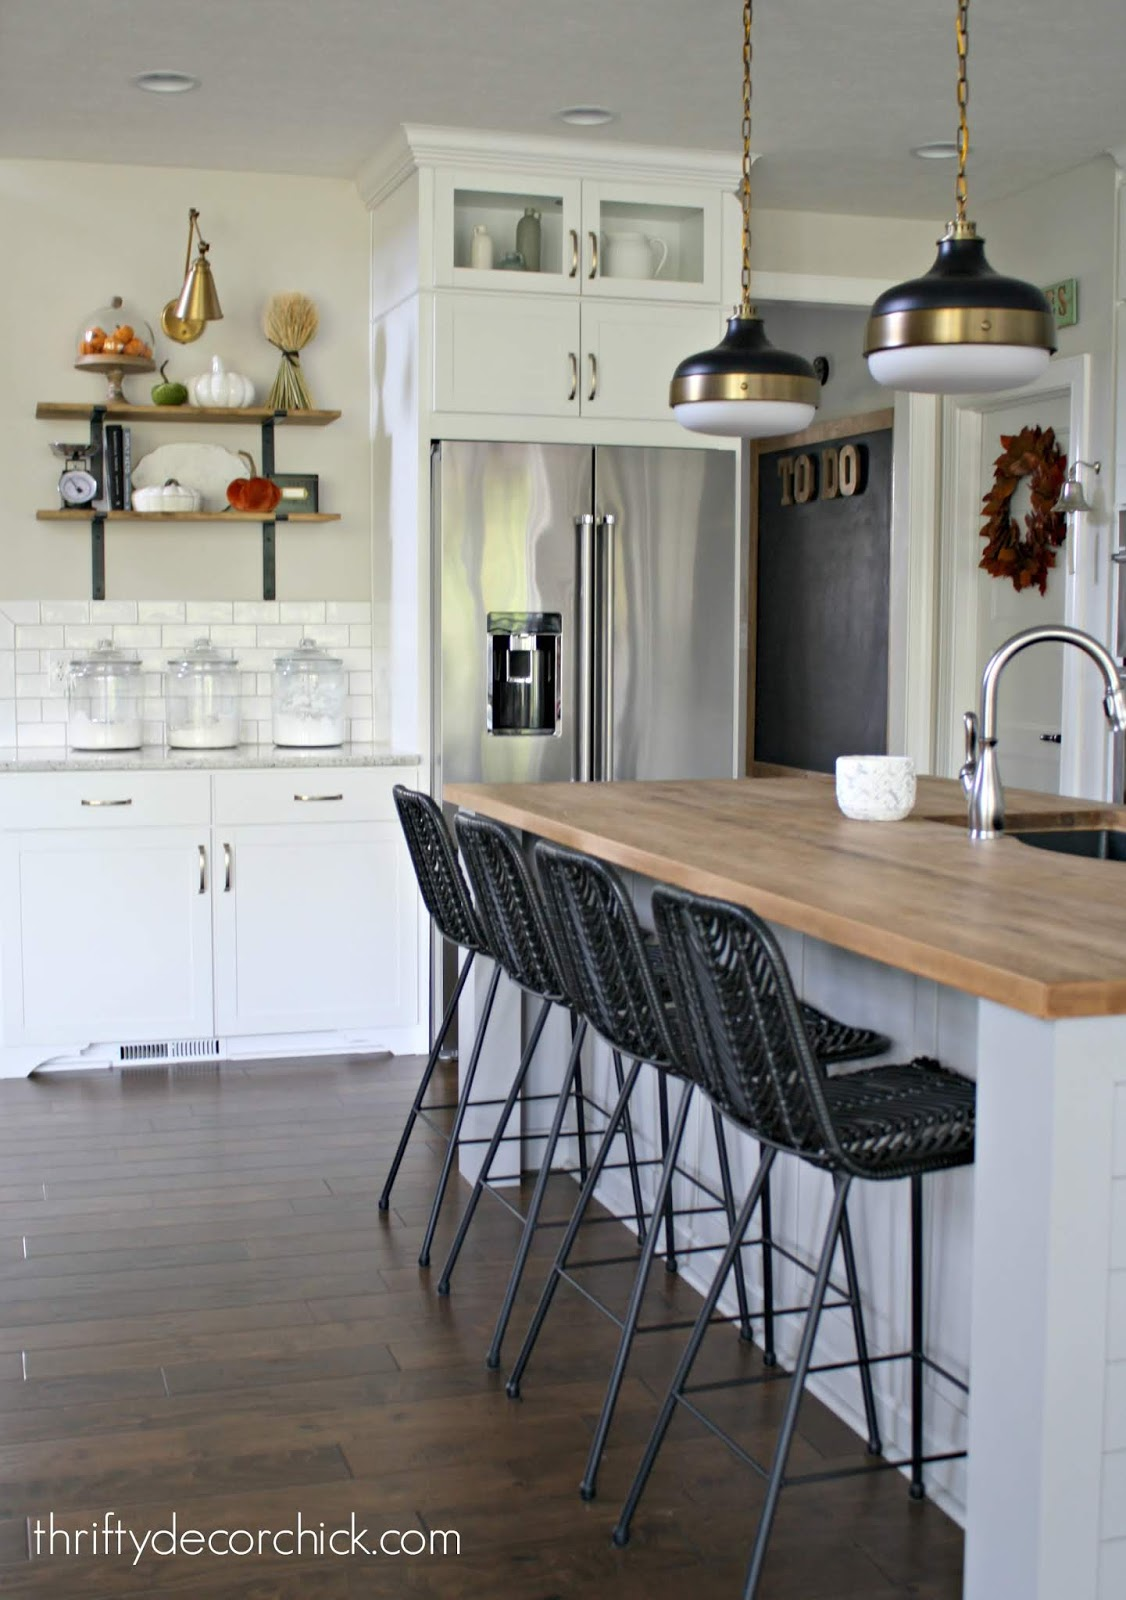 How to hang kitchen shelves for heavy weight